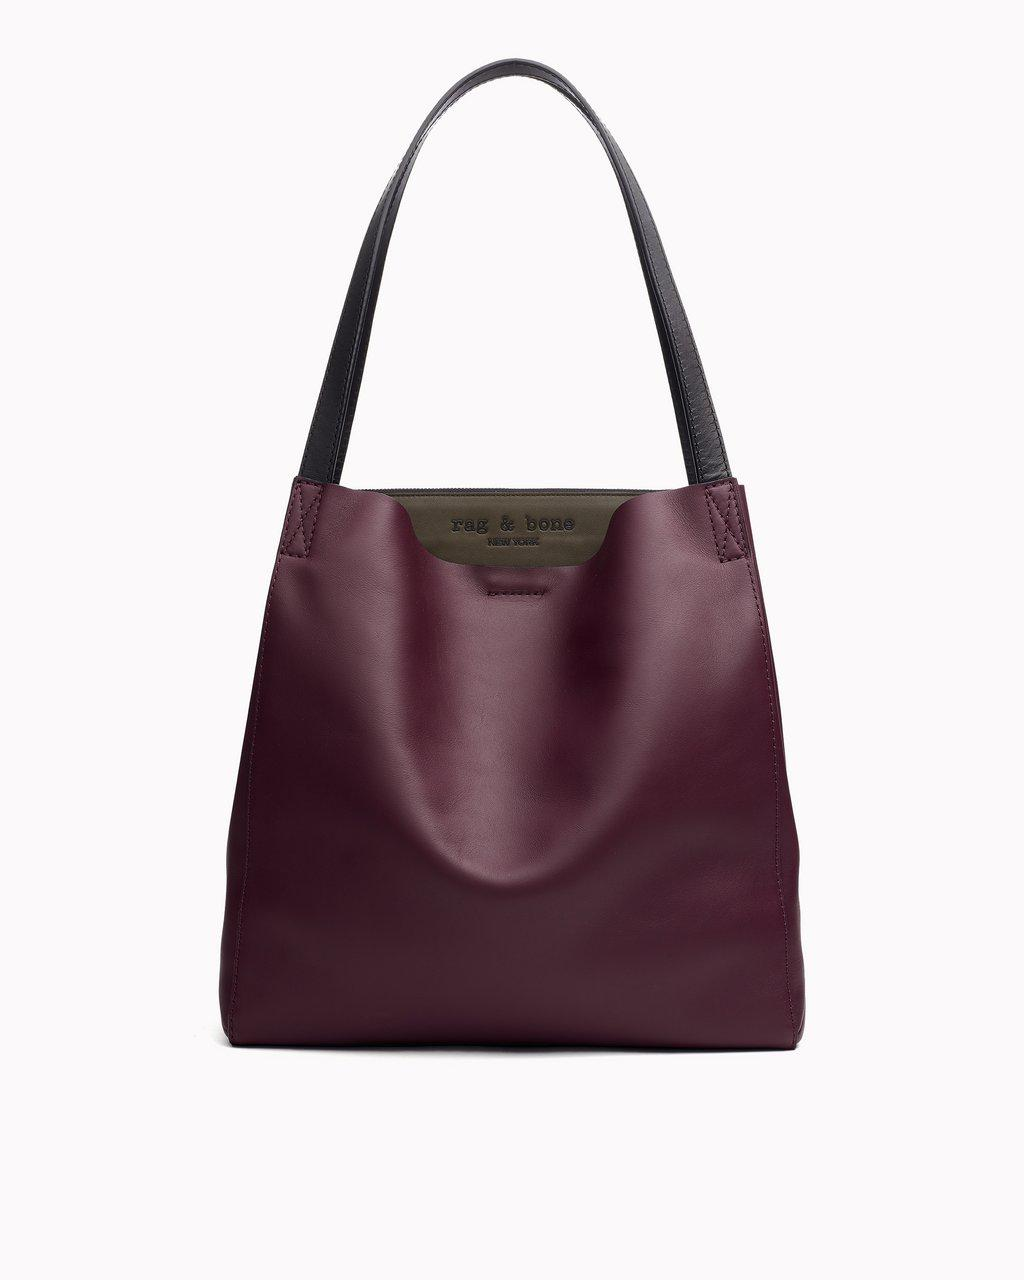 Passenger Tote - Leather